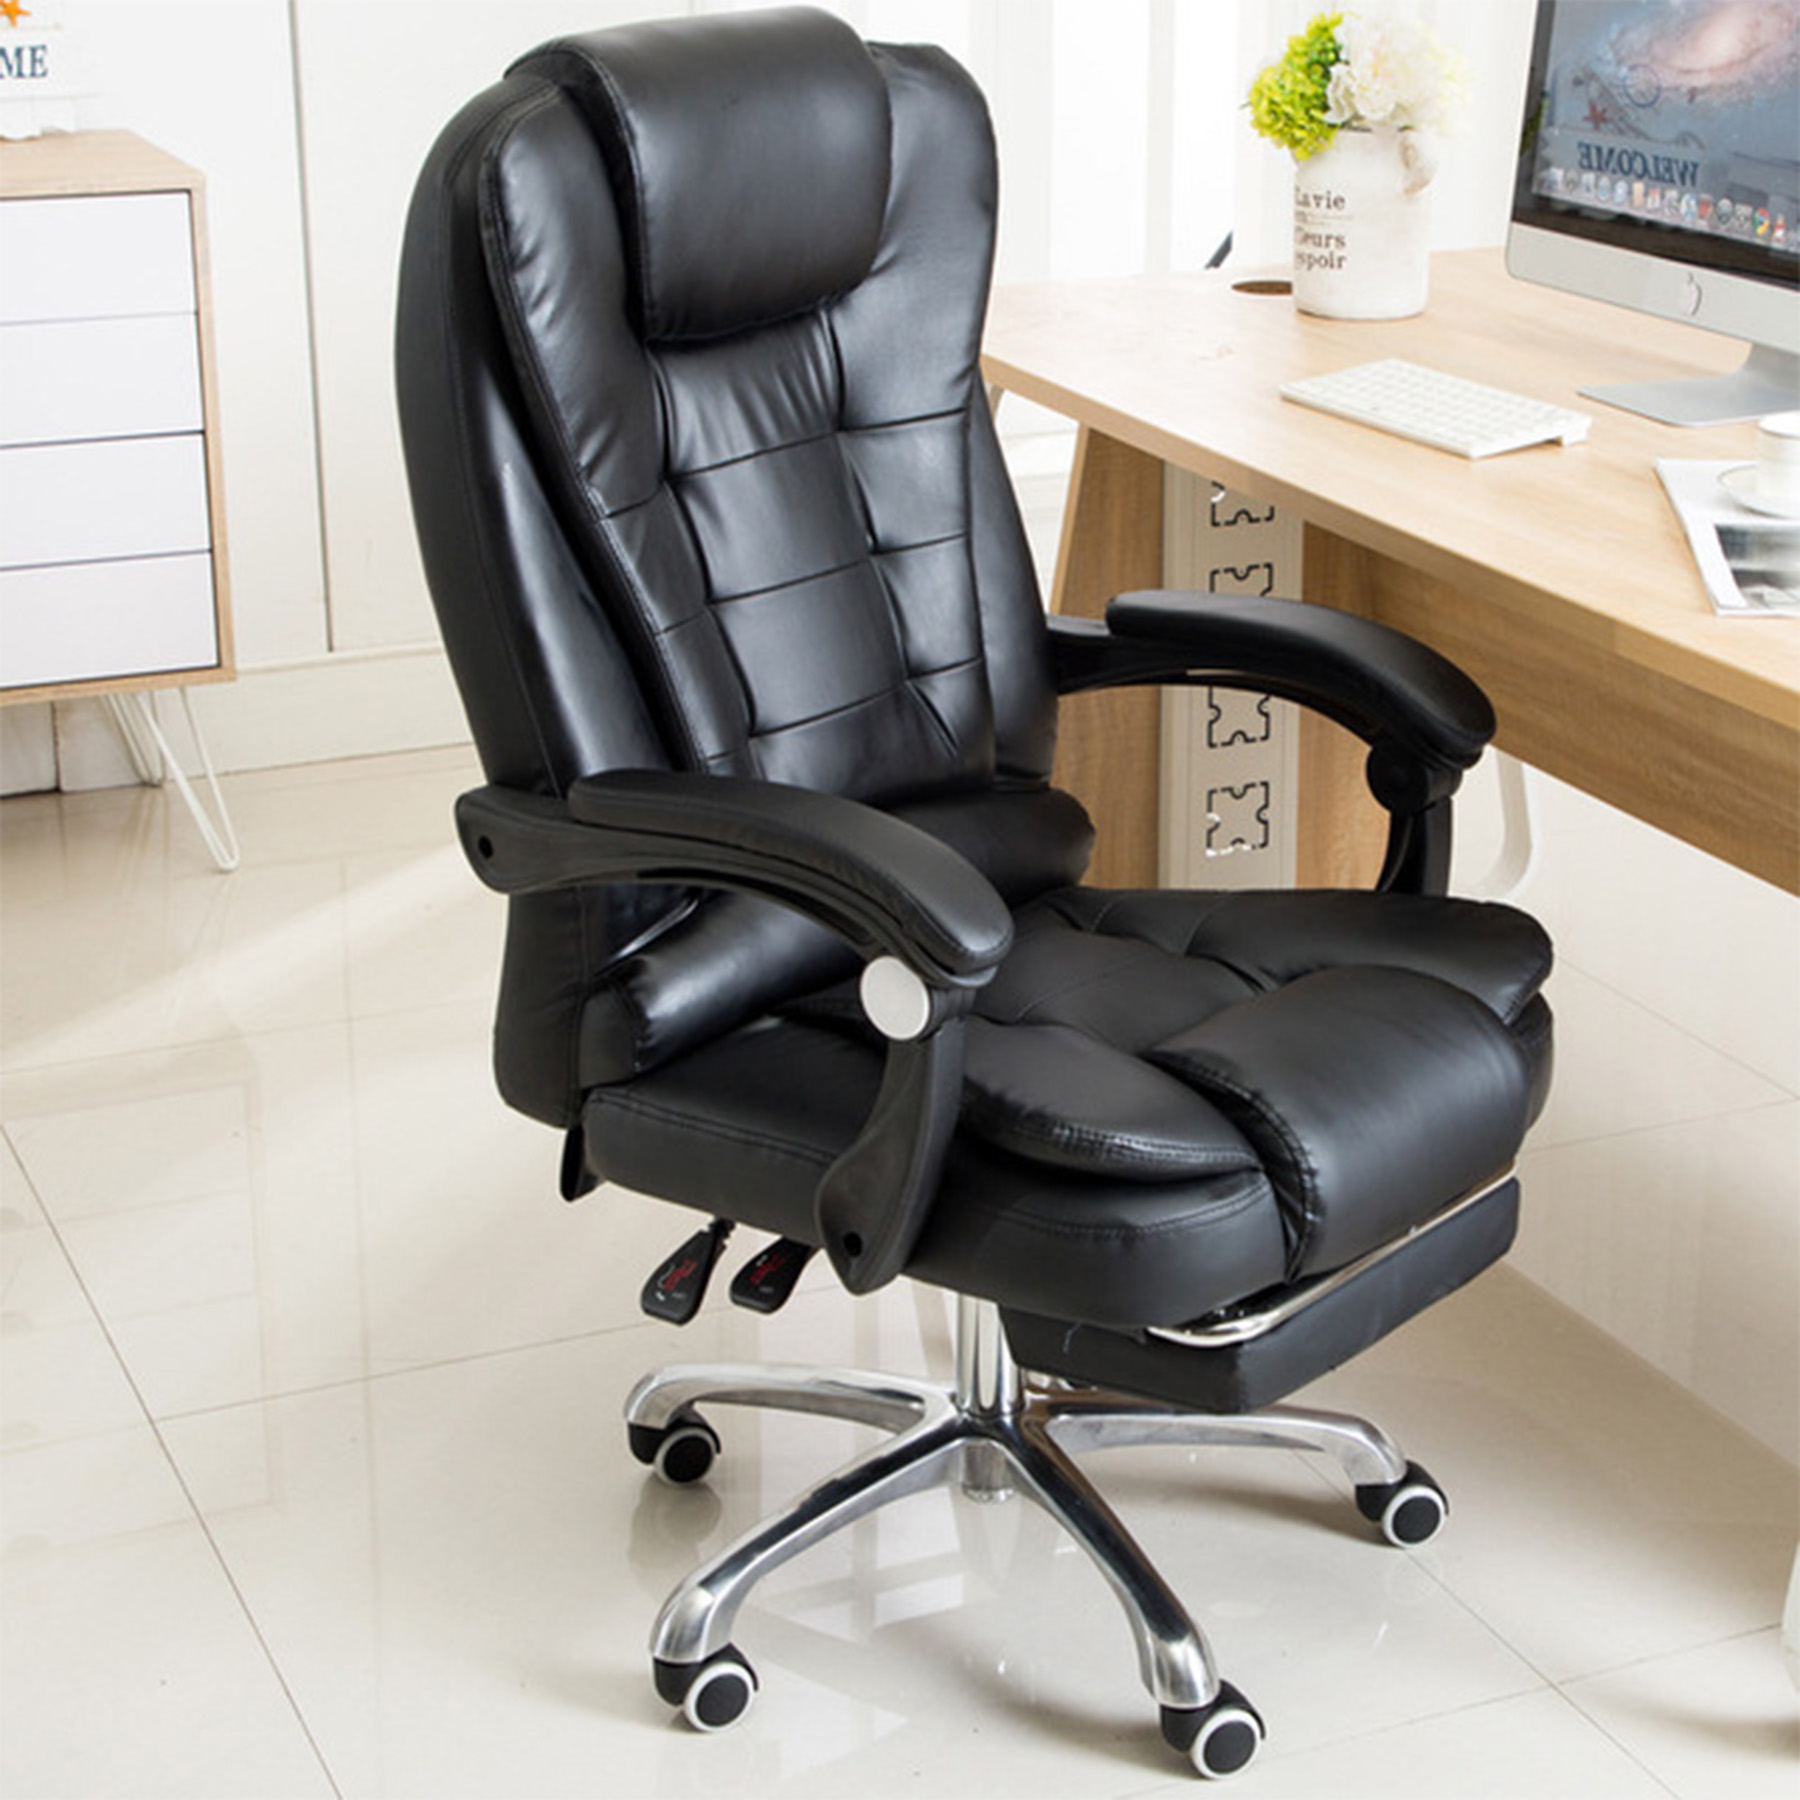 Details about Ergonomic Office Chair Massage Reclining Computer Gaming  Chair w/ Footrest